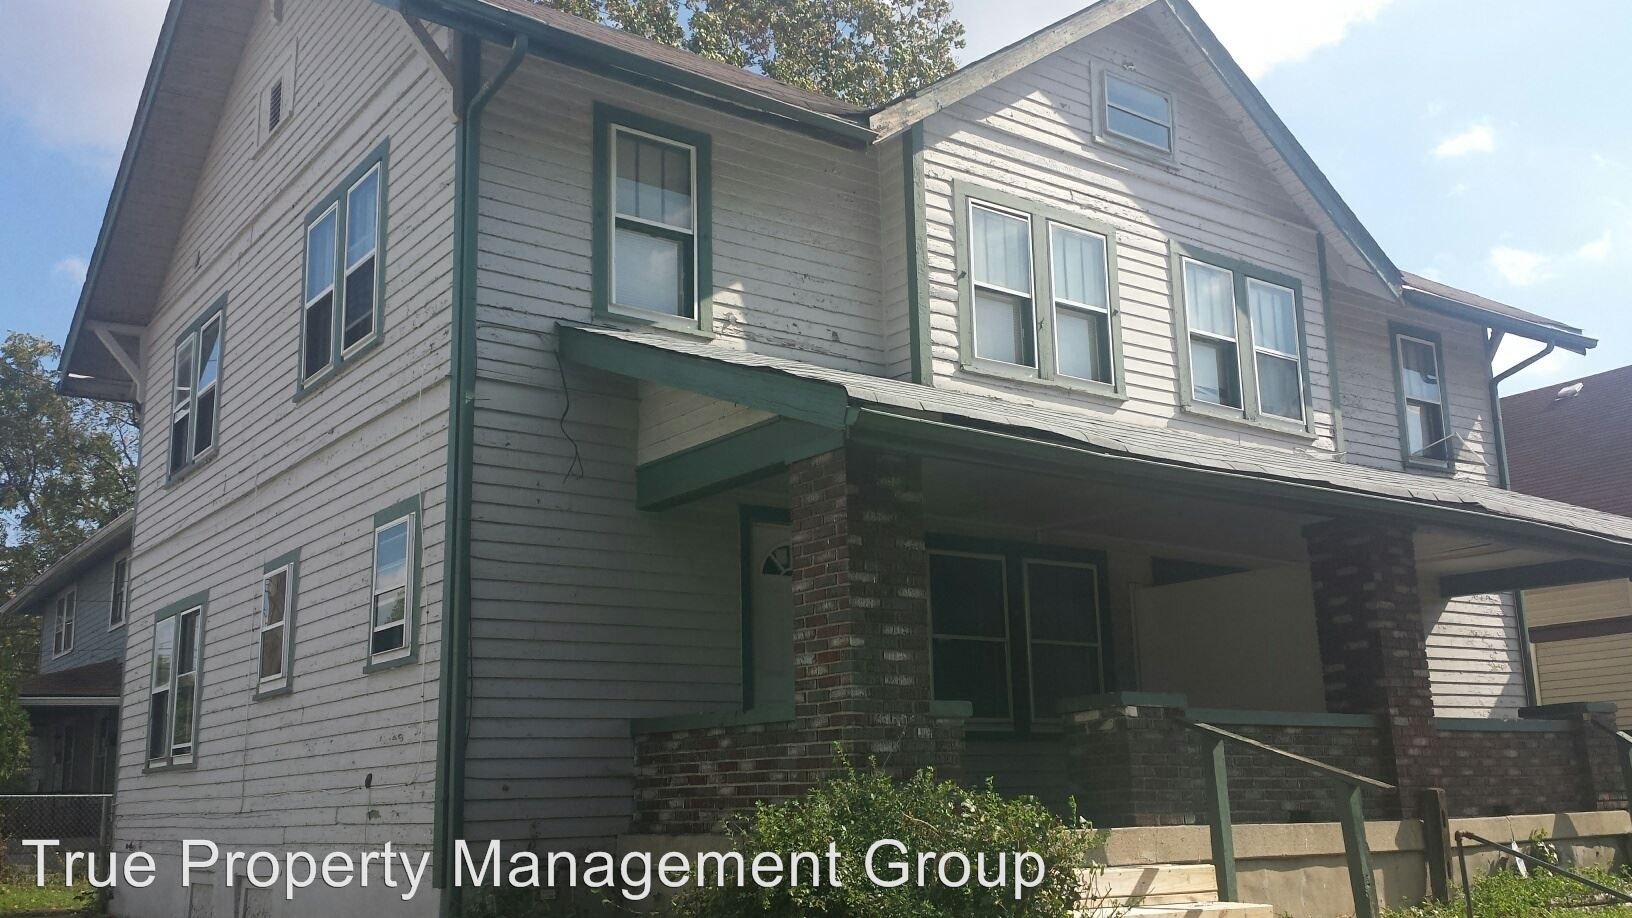 639 N Gray St Indianapolis In 46201 3 Bedroom House For Rent For 625 Month Zumper